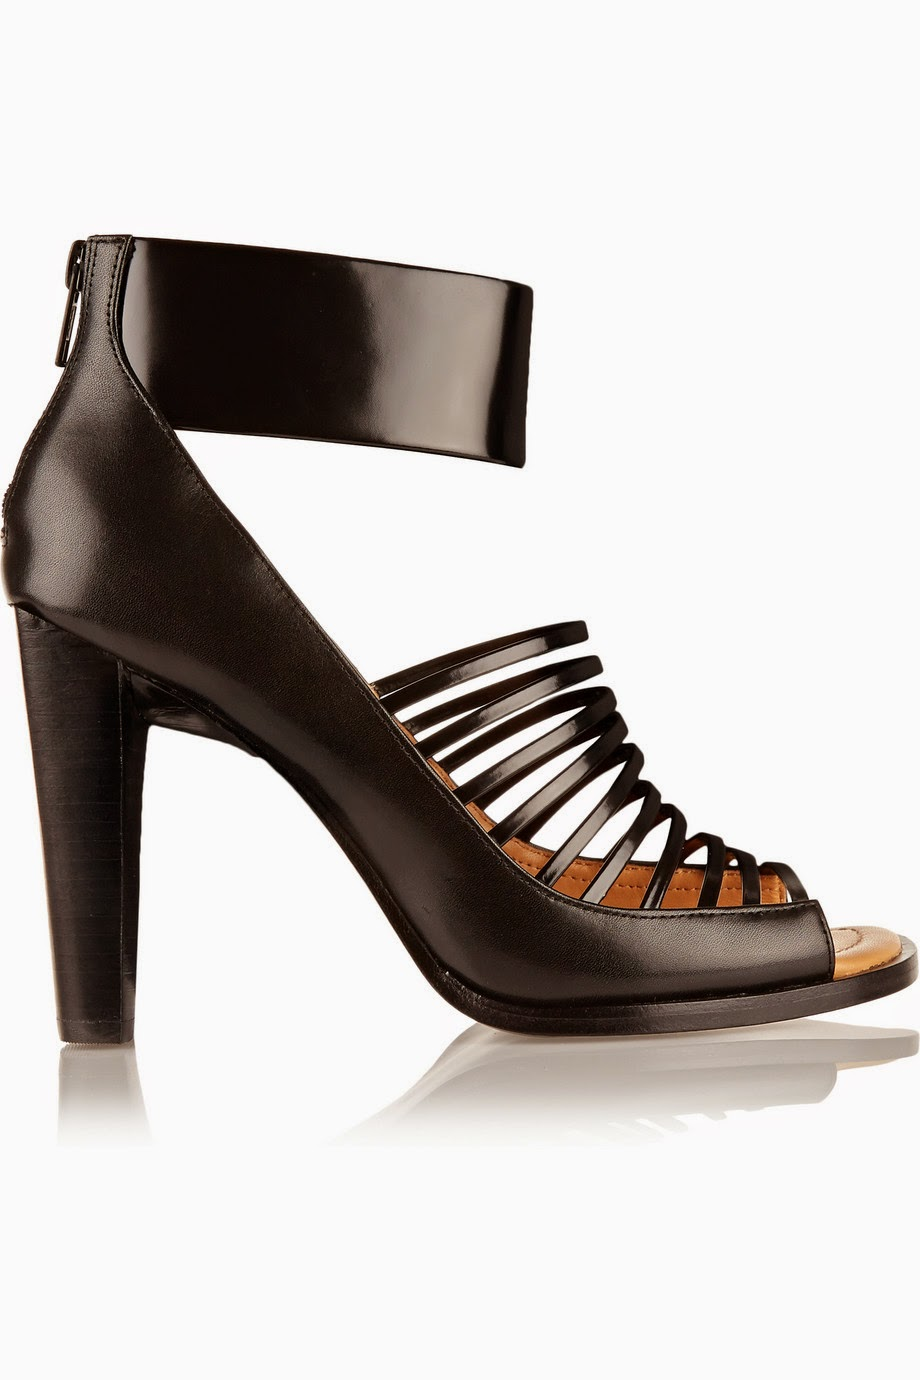 designer shoes on sale now on the outnet a sip of latte